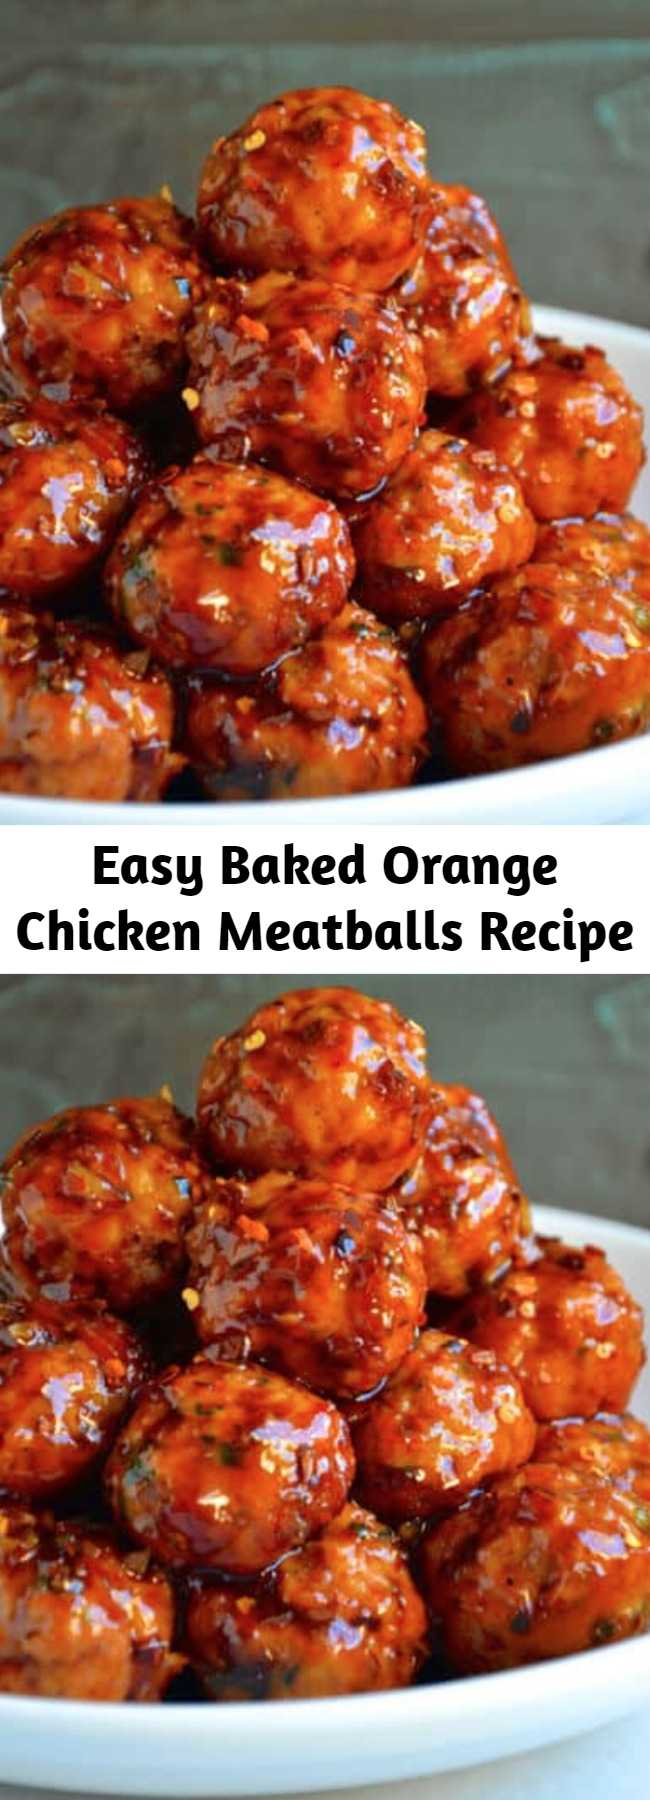 Easy Baked Orange Chicken Meatballs Recipe - Best of all, these meatballs will be on your table in 30 minutes or less. They're the perfect make-ahead weeknight meal, a school lunch standout, and the ultimate entrée to pair with homemade fried rice and chocolate-dipped fortune cookies. A fake-out for takeout has never been easier!